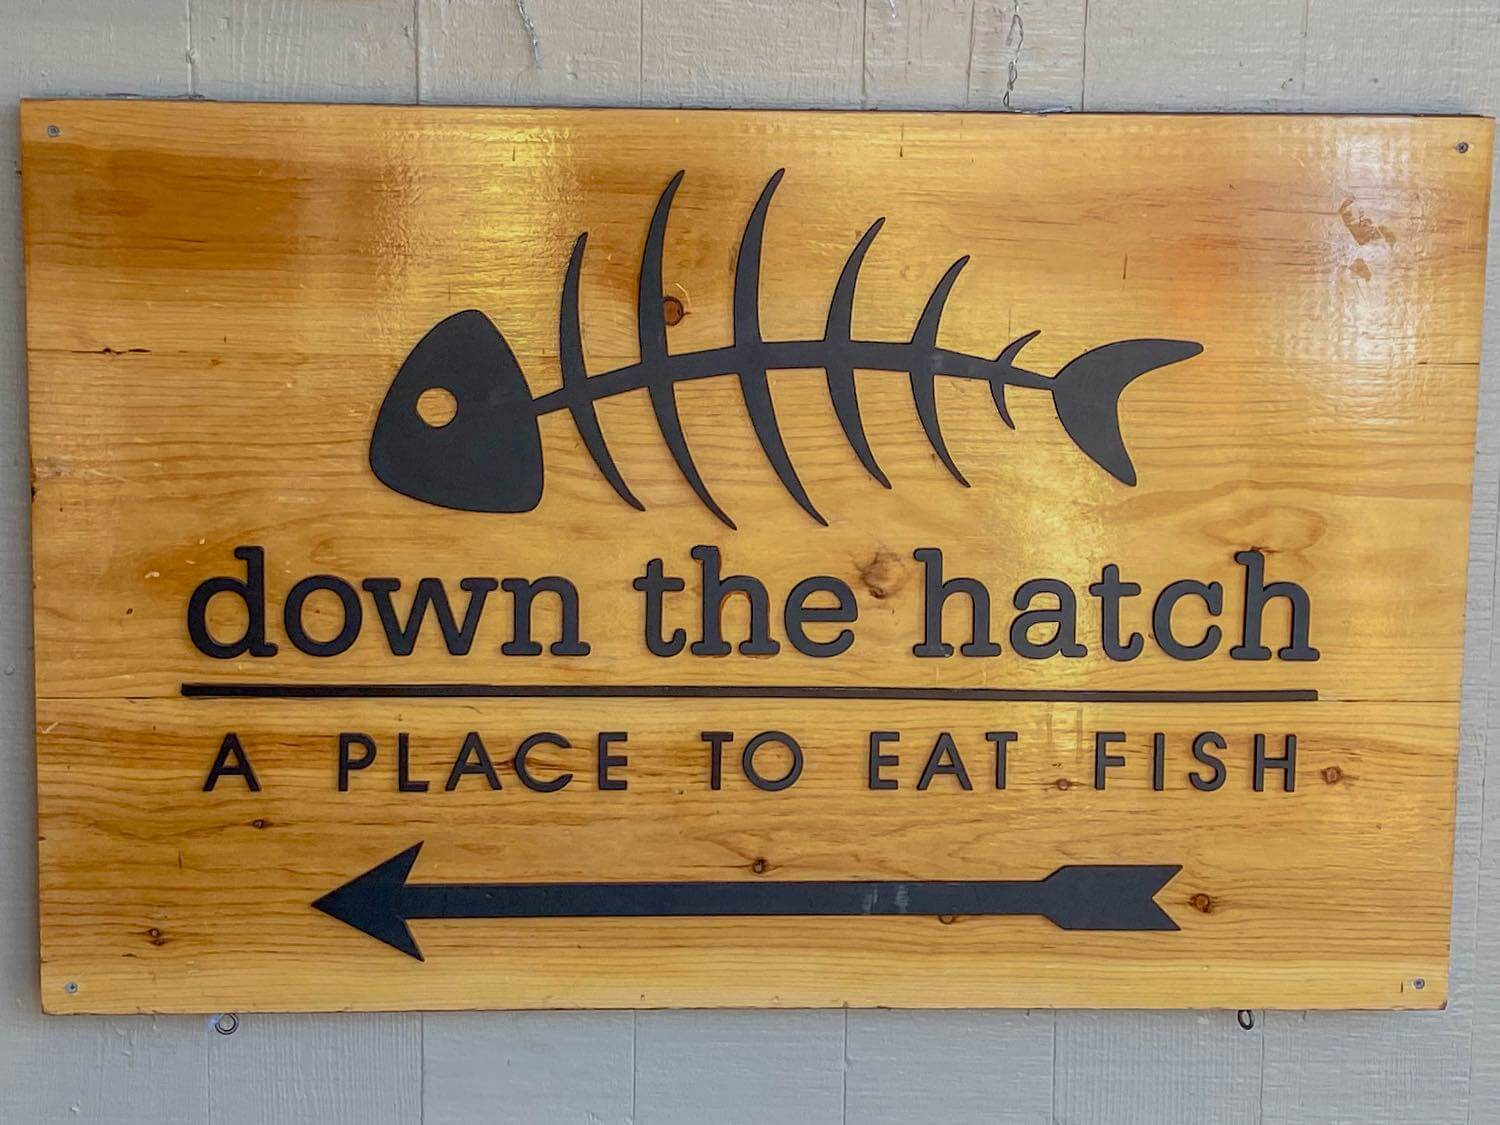 Down the Hatch restaurant in Lahaina, Maui